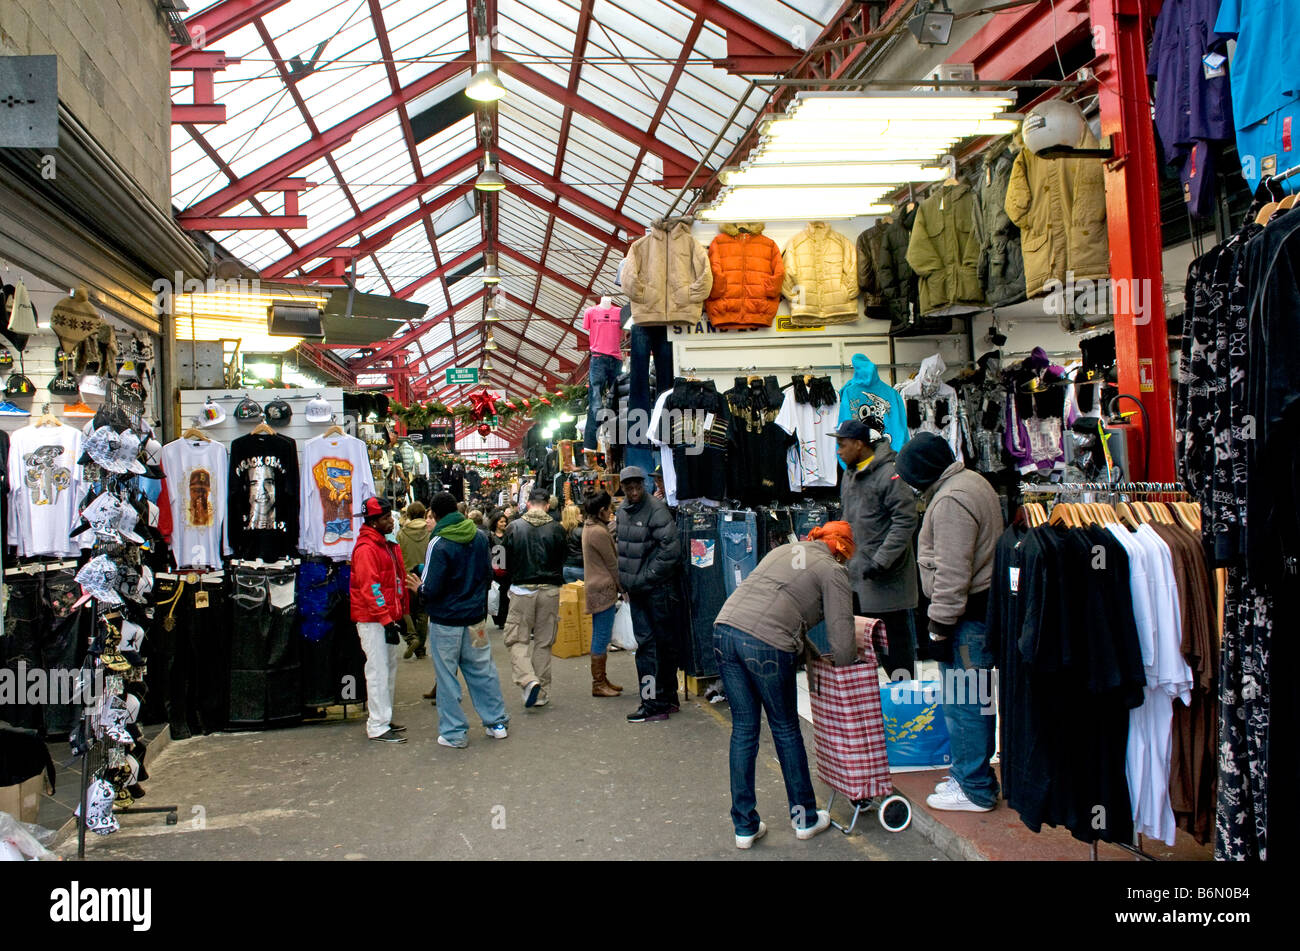 Thriving business at the flea market of st ouen at porte de stock photo royalty free image - Marche au puce paris vetement ...